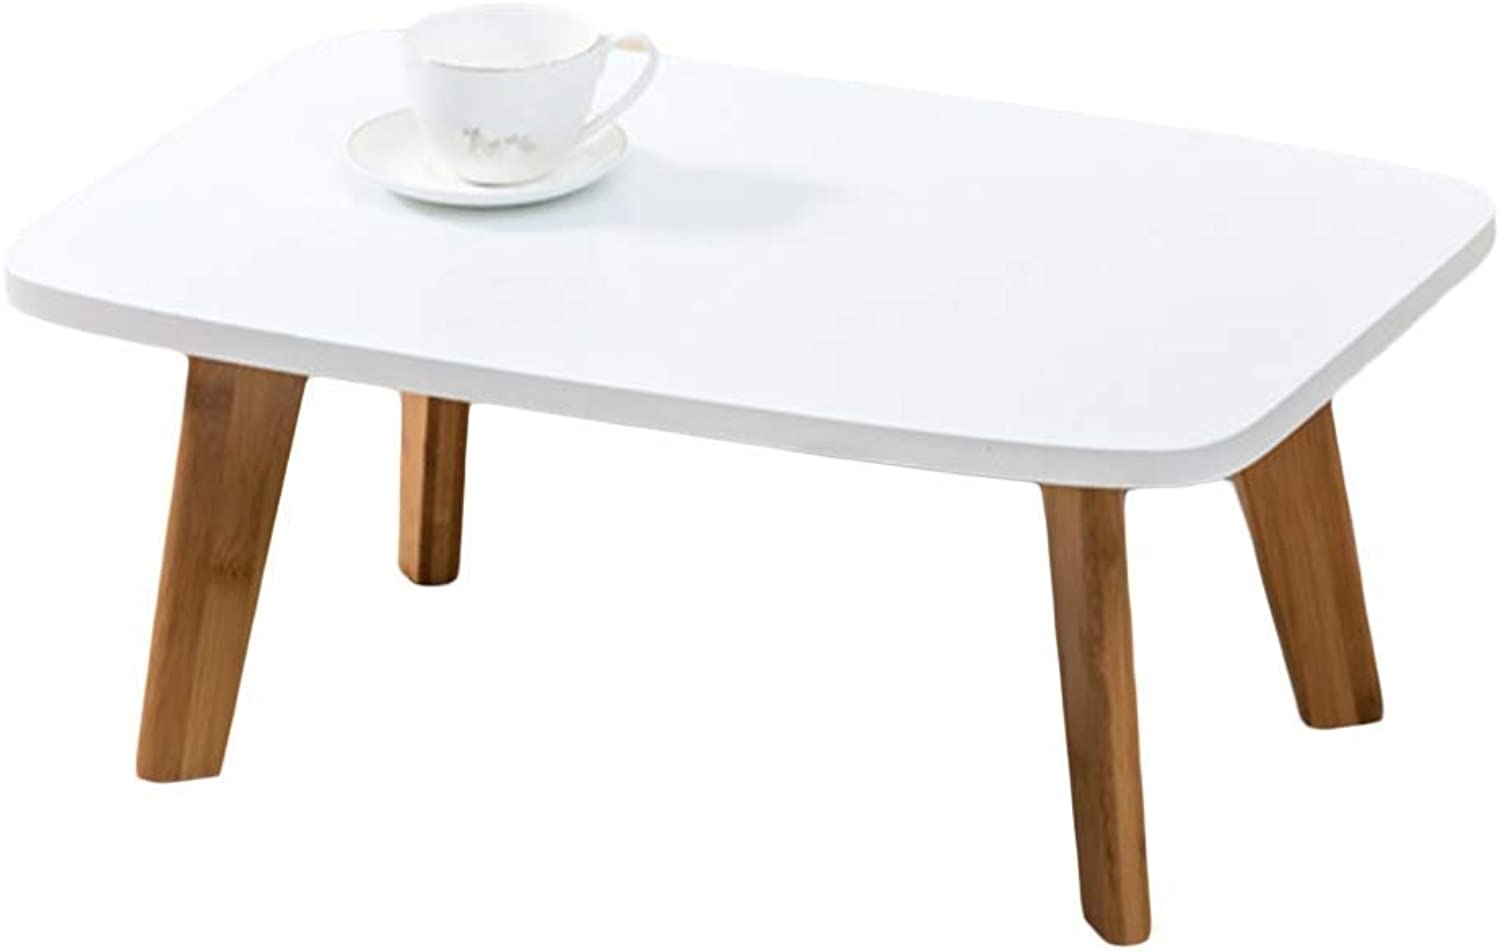 Folding Desk and Household White Table, Student Mobile Computer Lazy Table Bedroom Bed Notebook Table 60×40×24.8cm